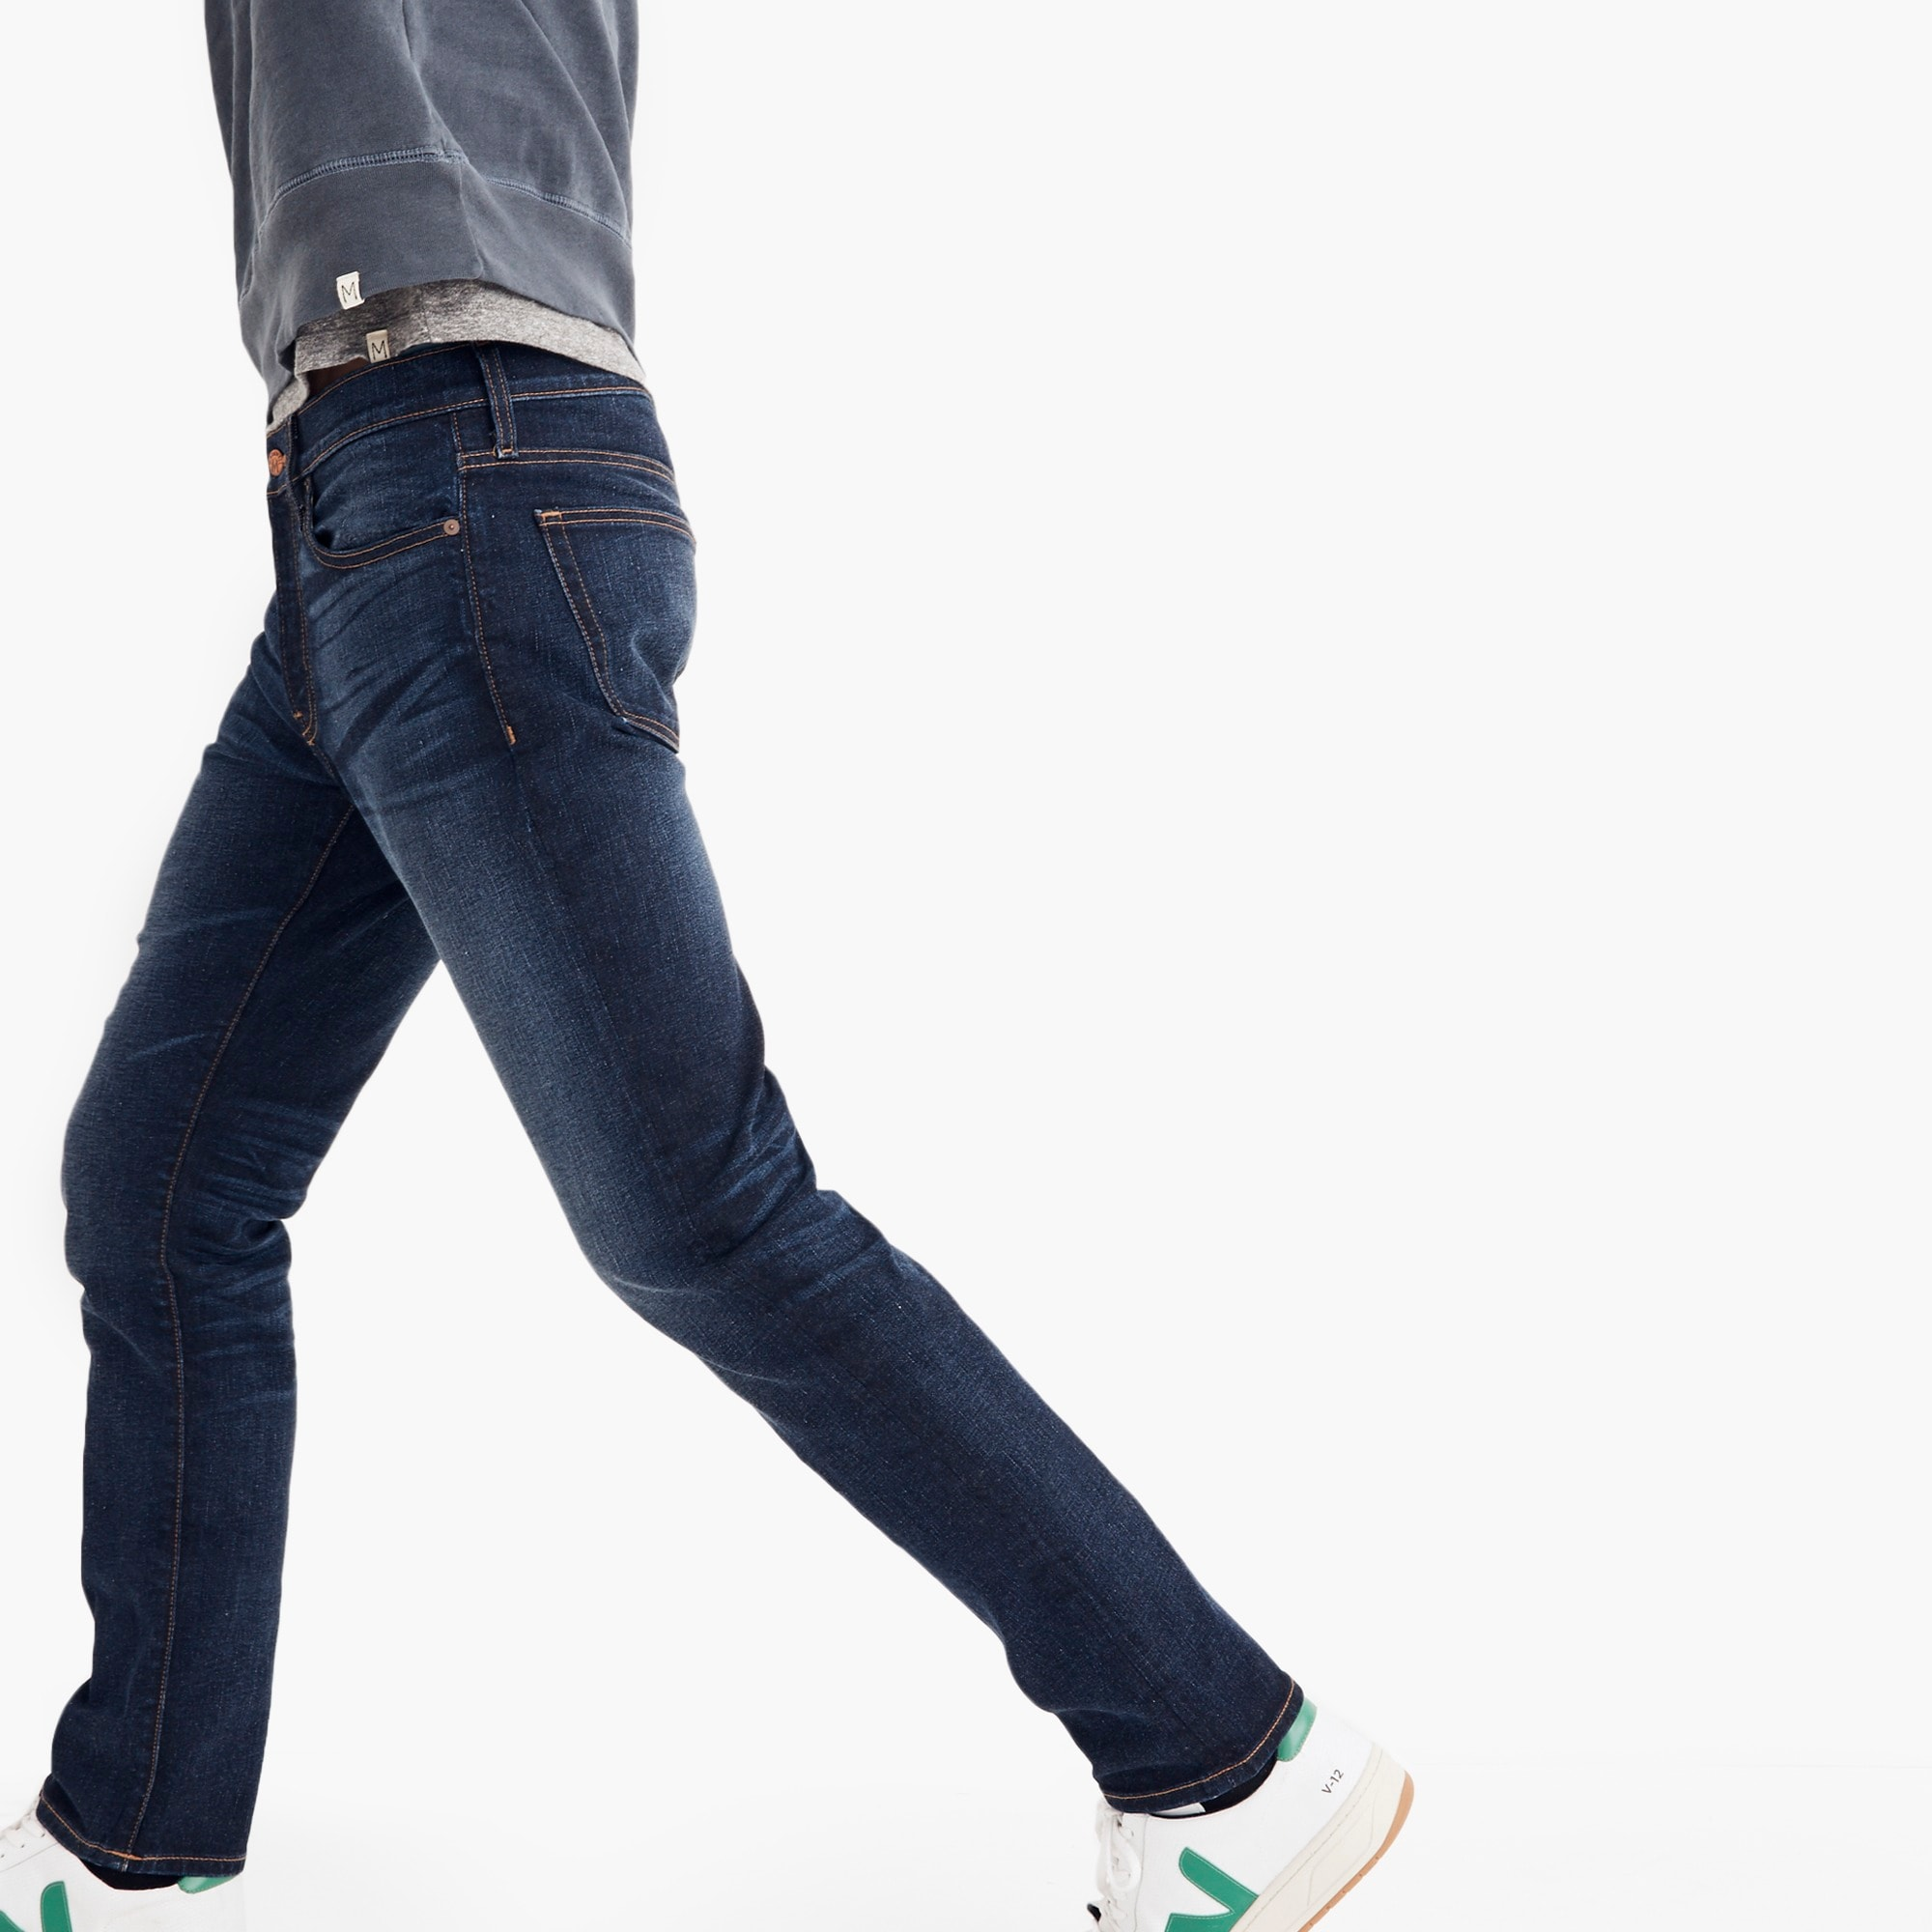 Image 2 for Madewell slim jeans in dark blue wash